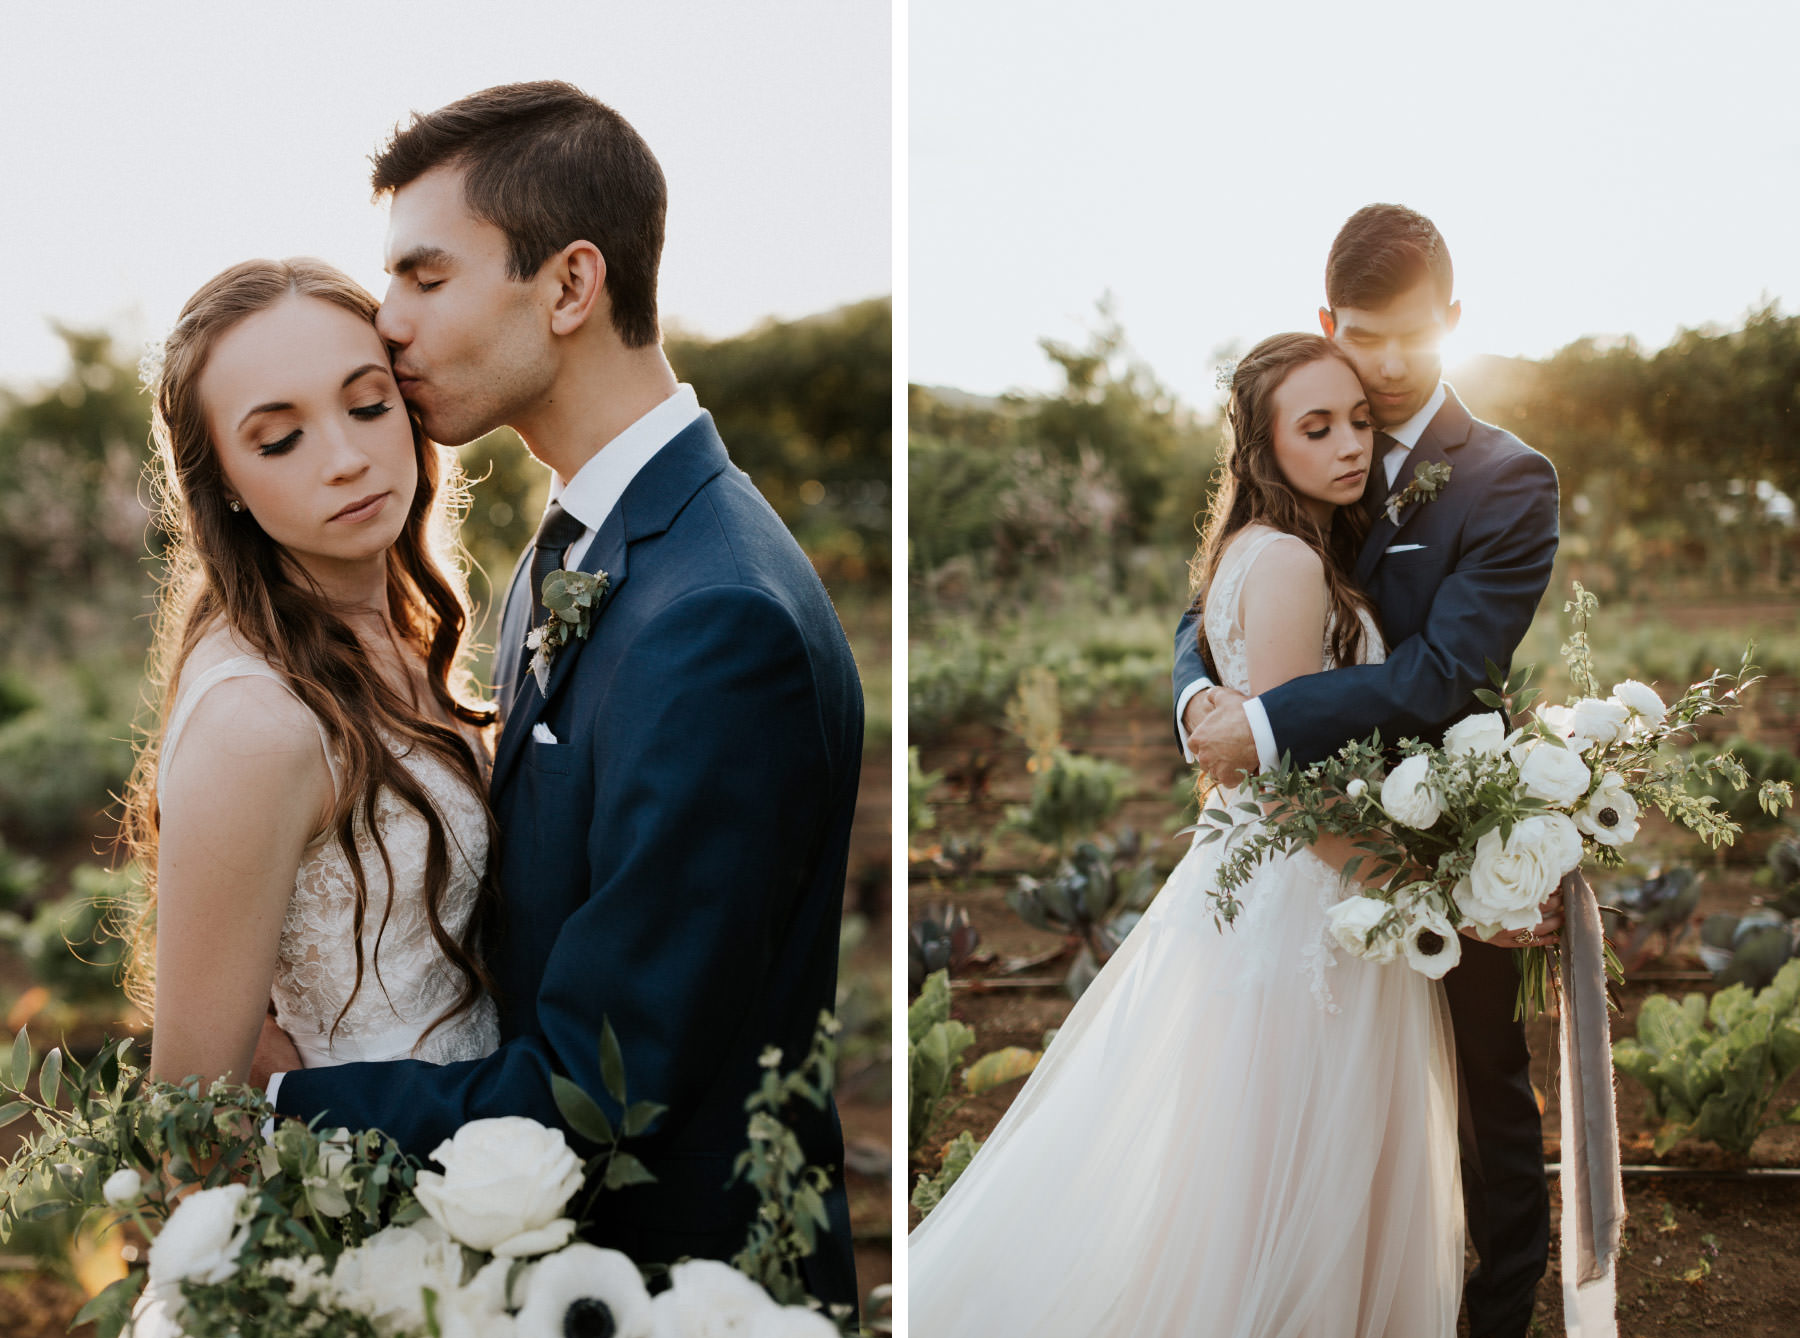 Bride and groom romantics at Terra Madre Gardens